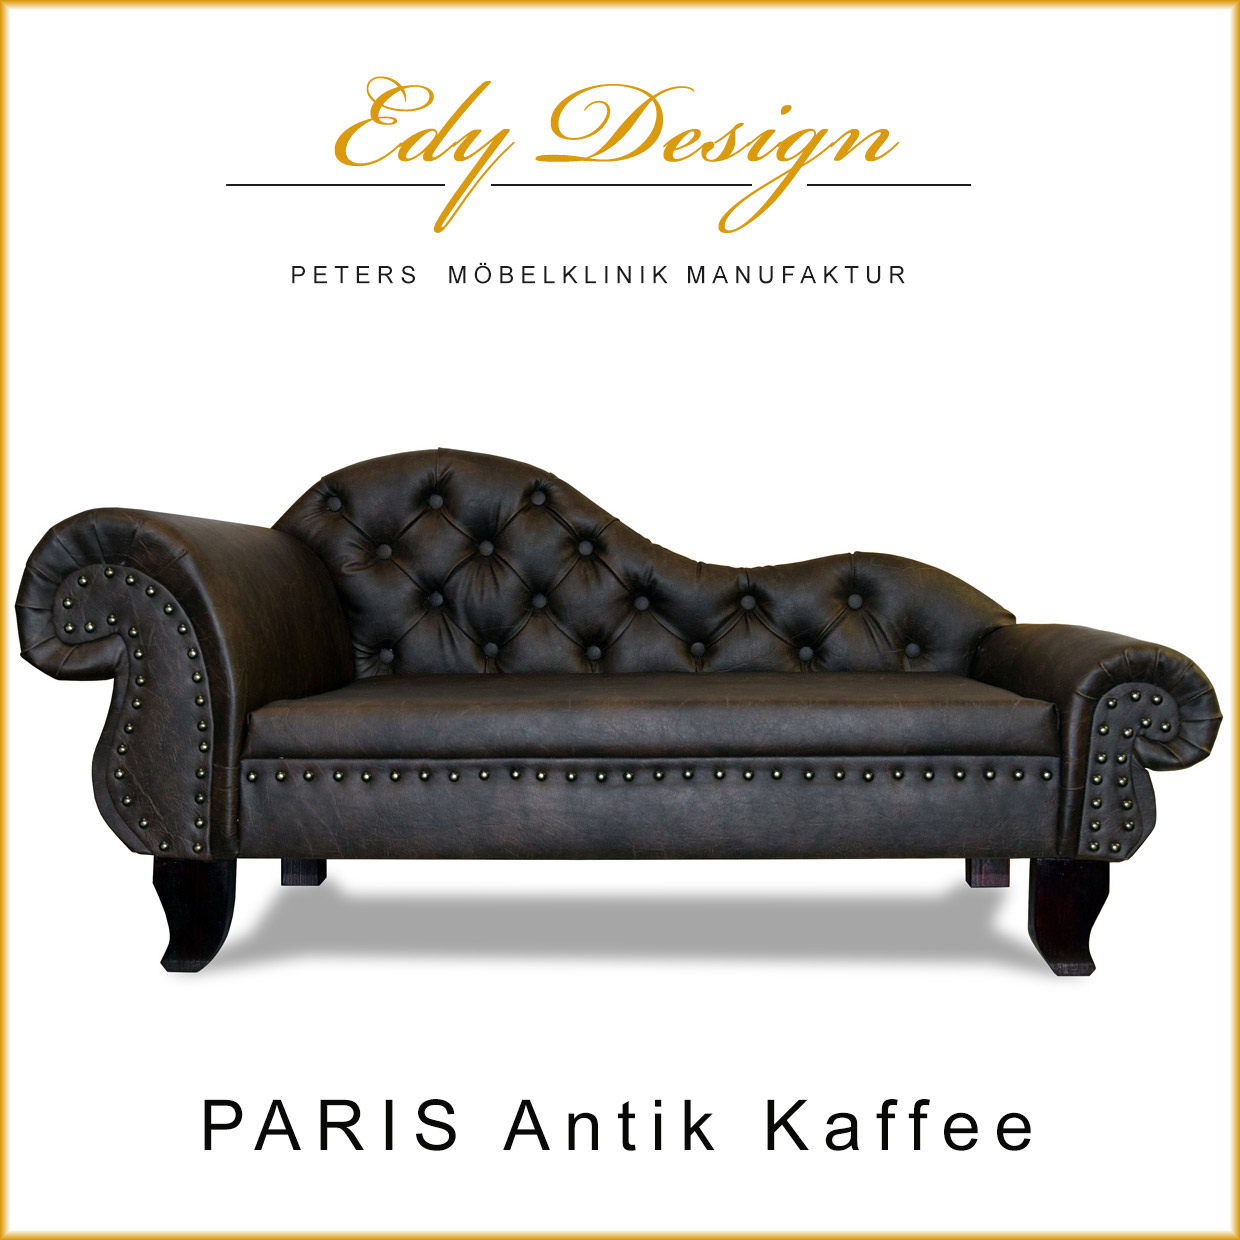 Xxl Chesterfield Sofa Luxury Dog Sofa Dog Bed Paris Chaiselongues Chesterfield